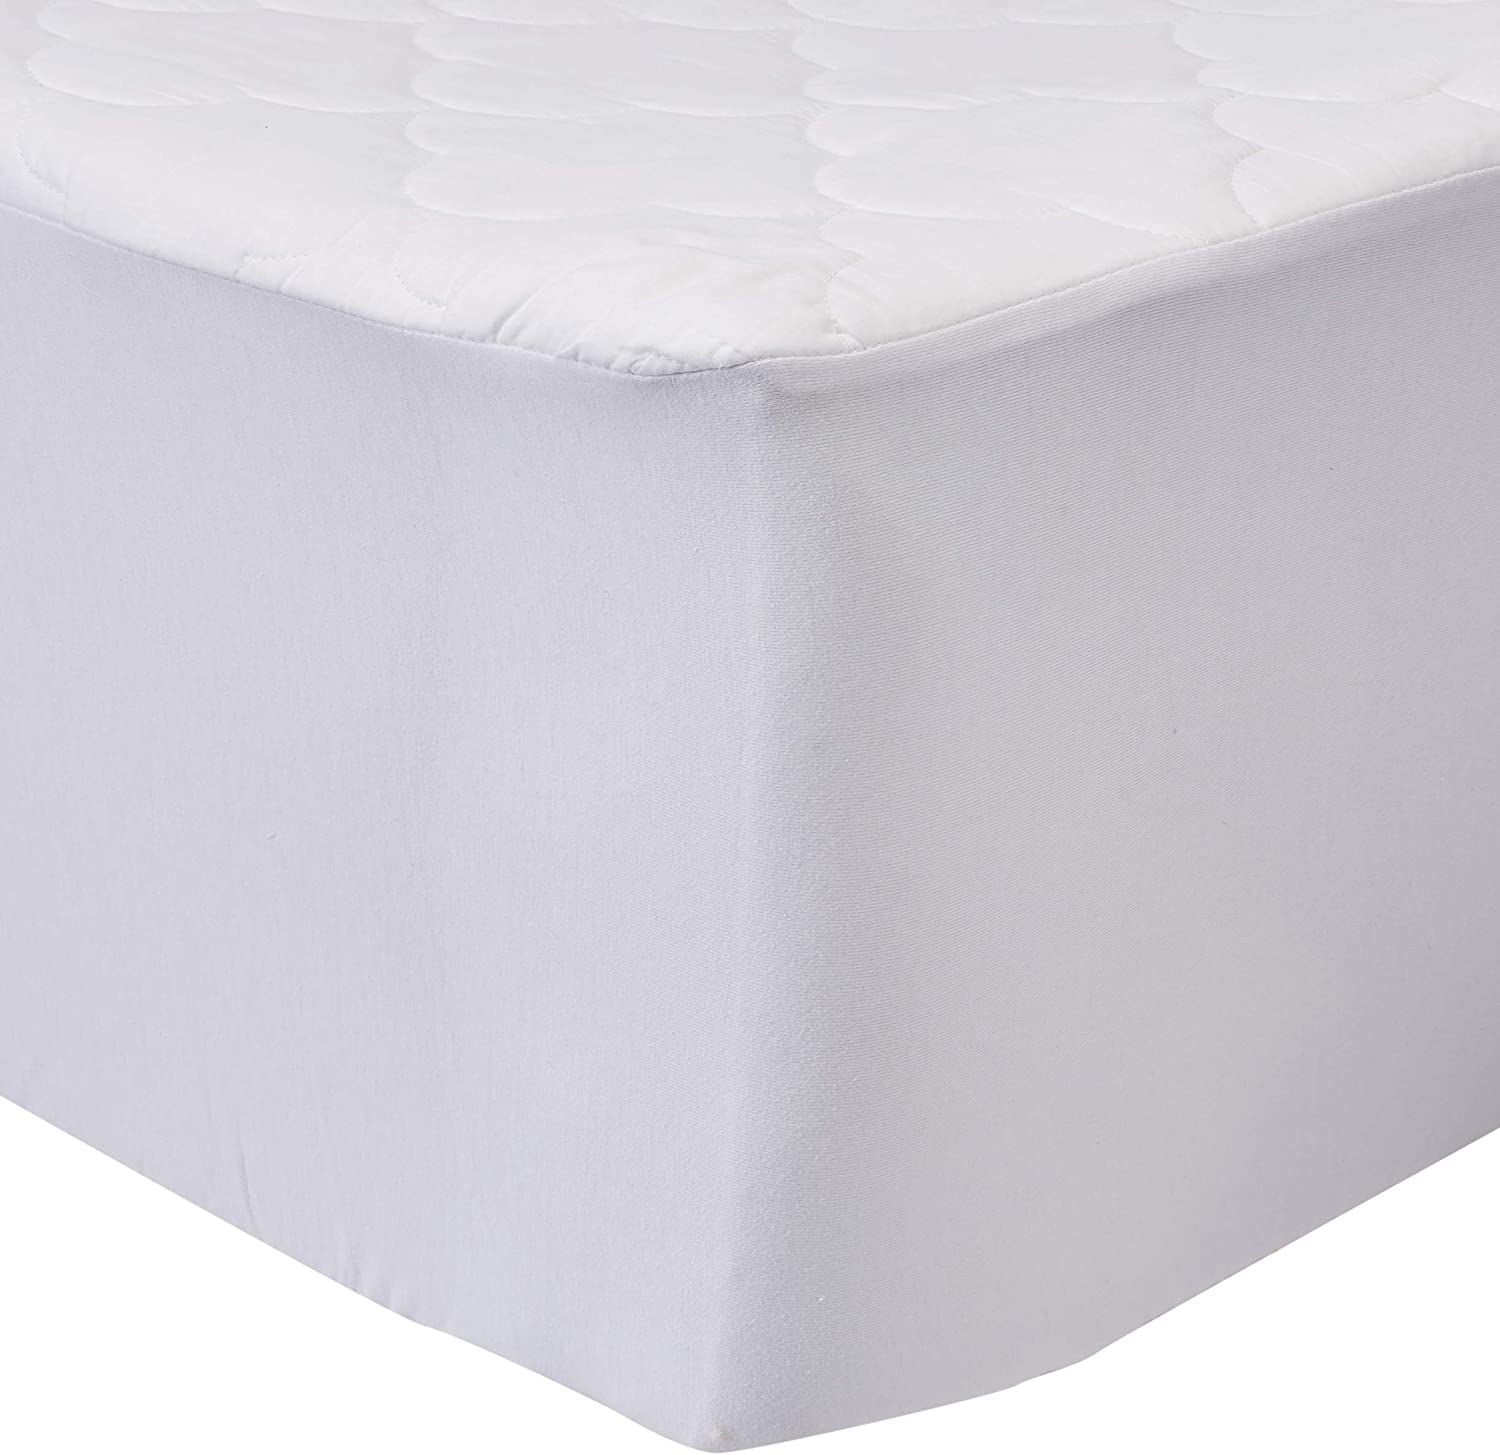 Sleep Philosophy All Natural Cotton Filled Mattress Pad, Full